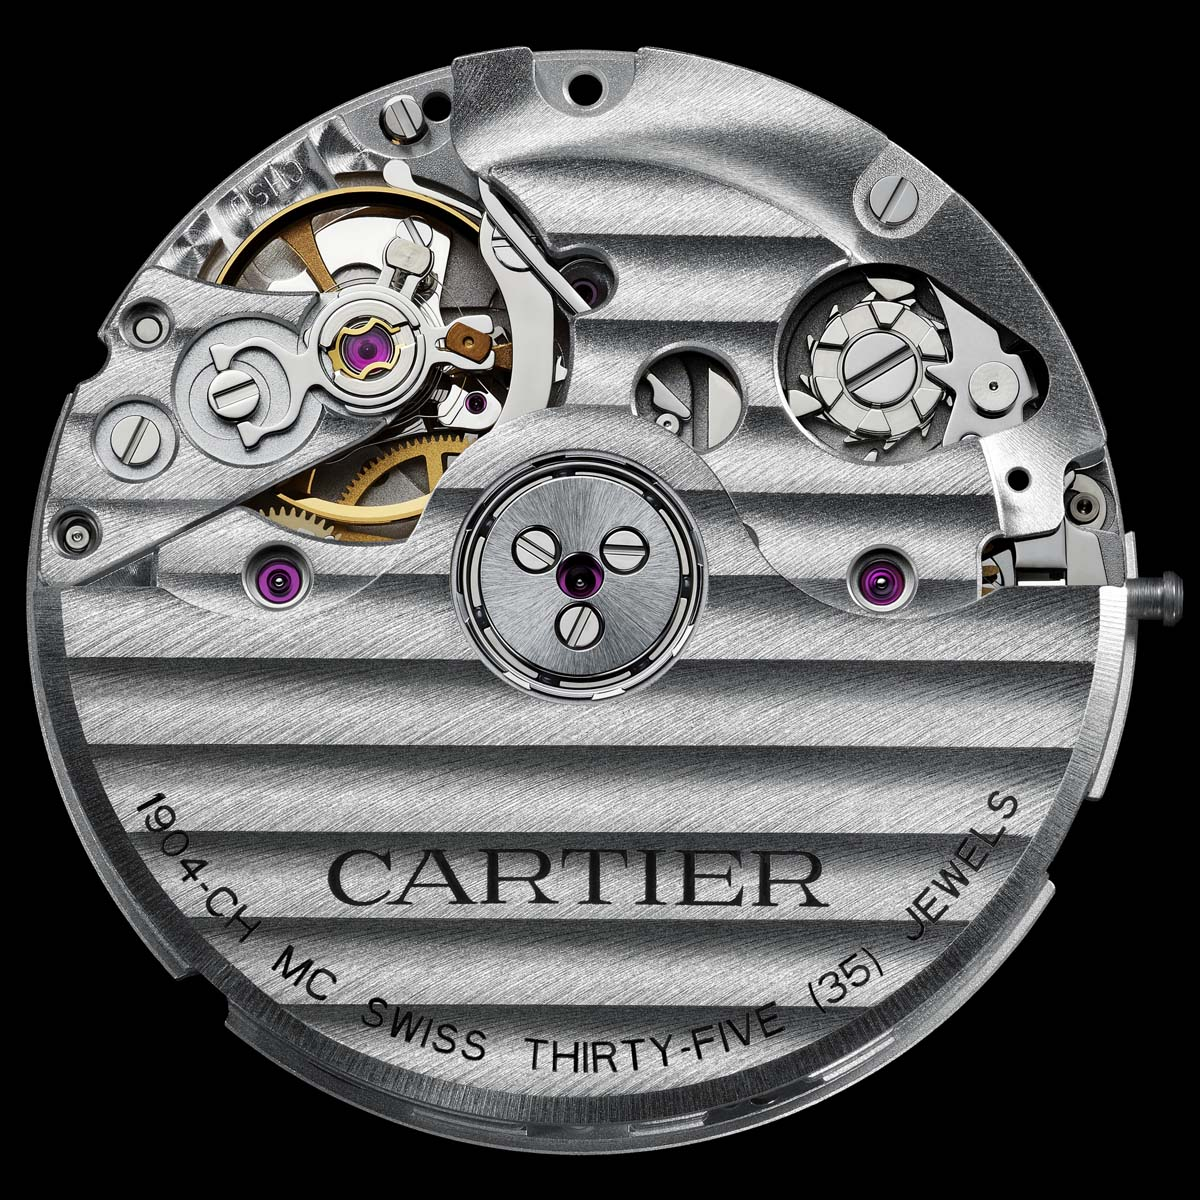 cartier-1904-MC-Caliber.jpg